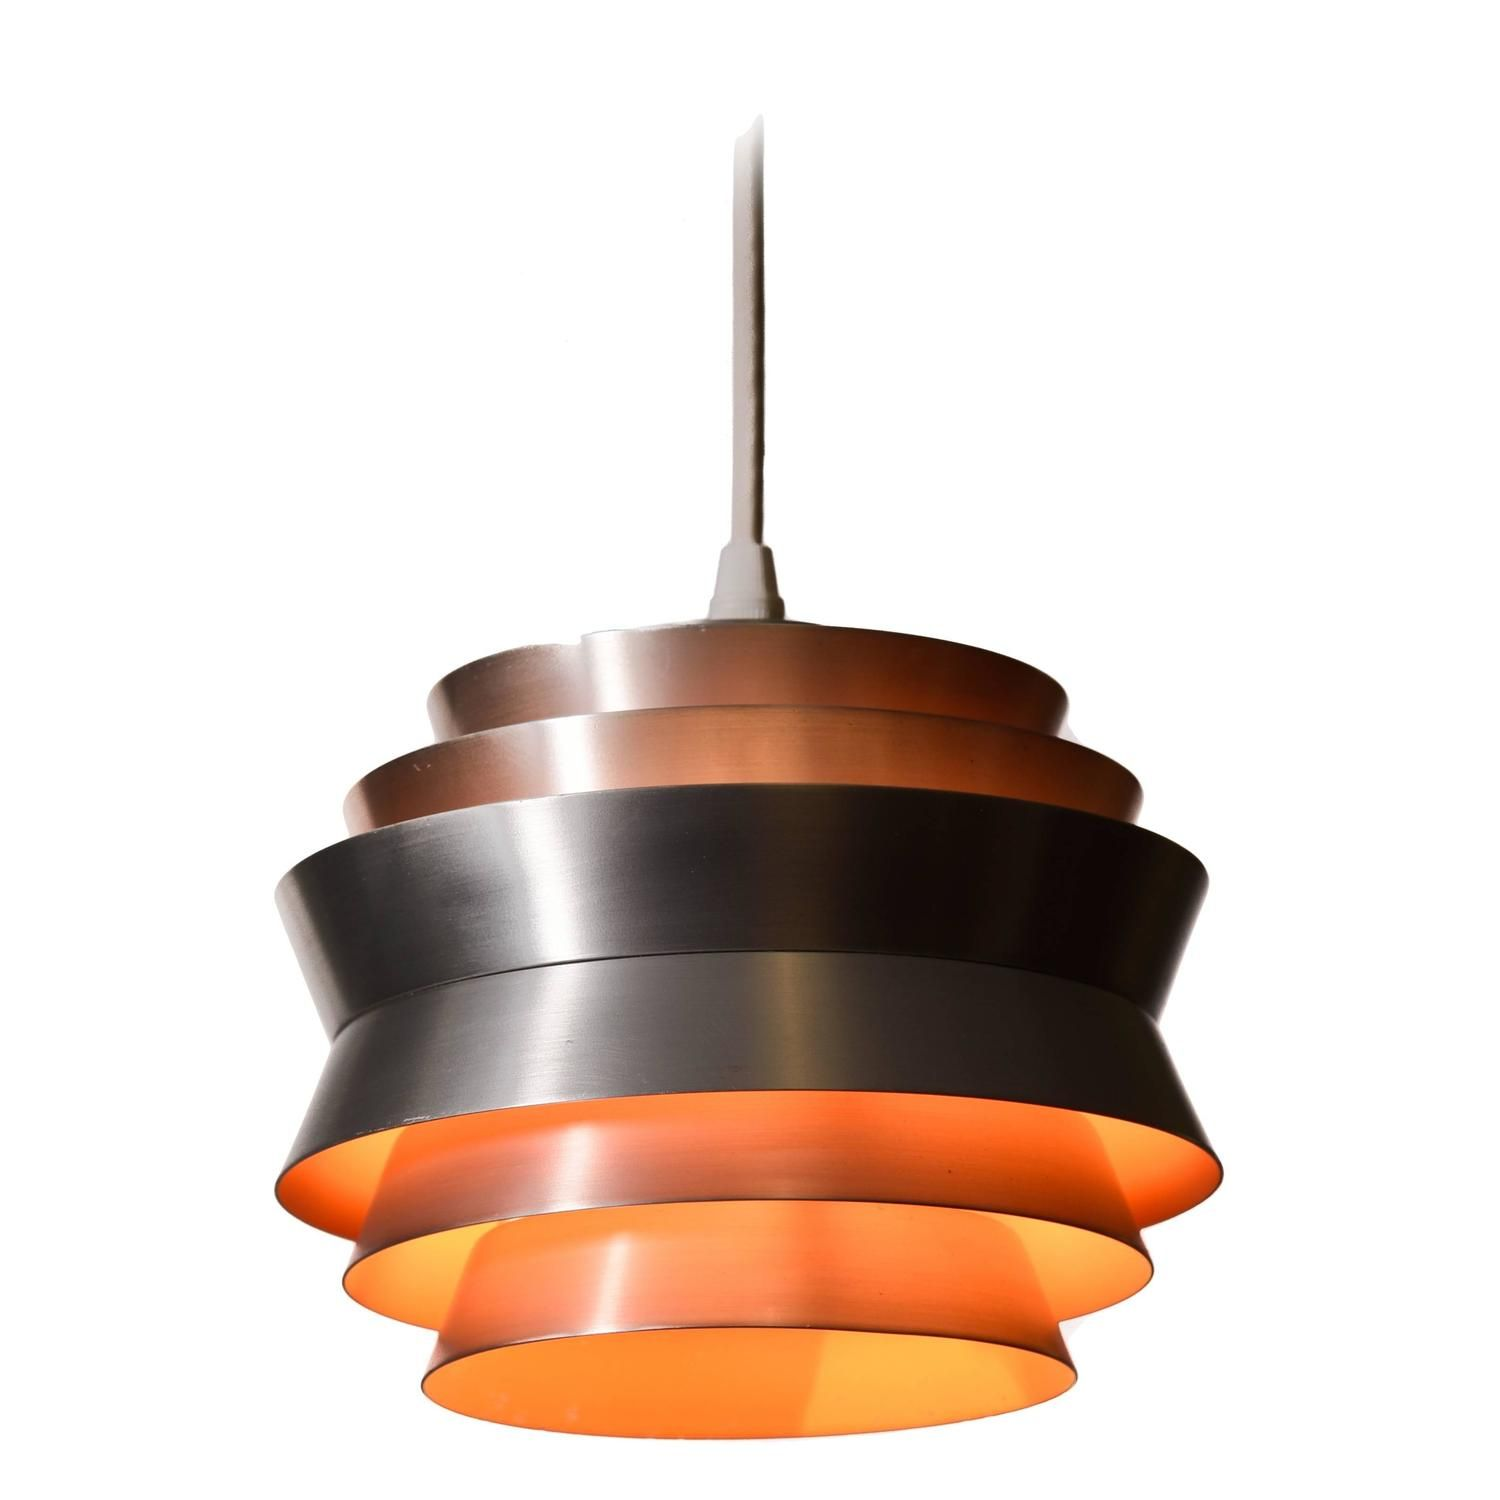 Danish modern six tiered pendant danish modern pendant lighting danish modern six tiered pendant from a unique collection of antique and modern chandeliers arubaitofo Image collections